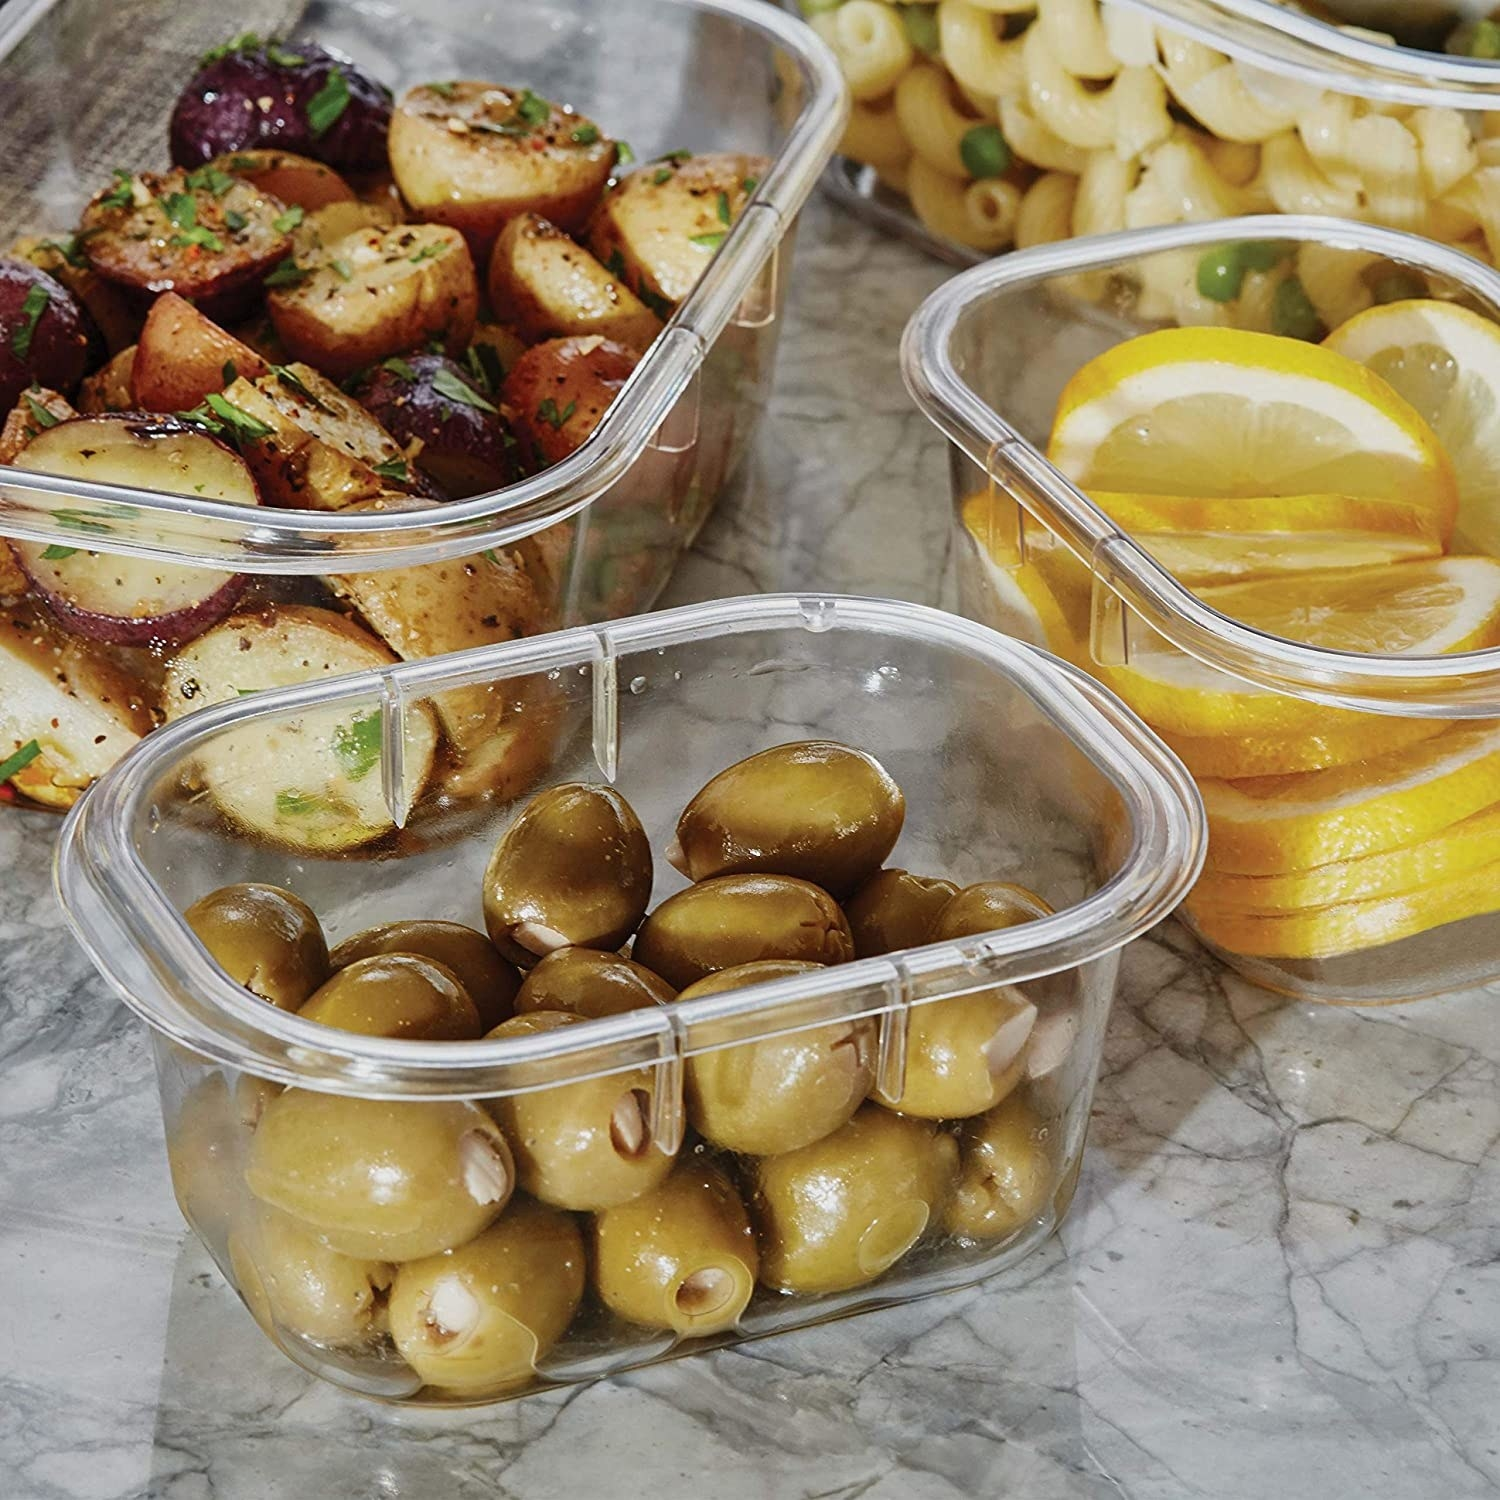 The containers filled with various kind of foods